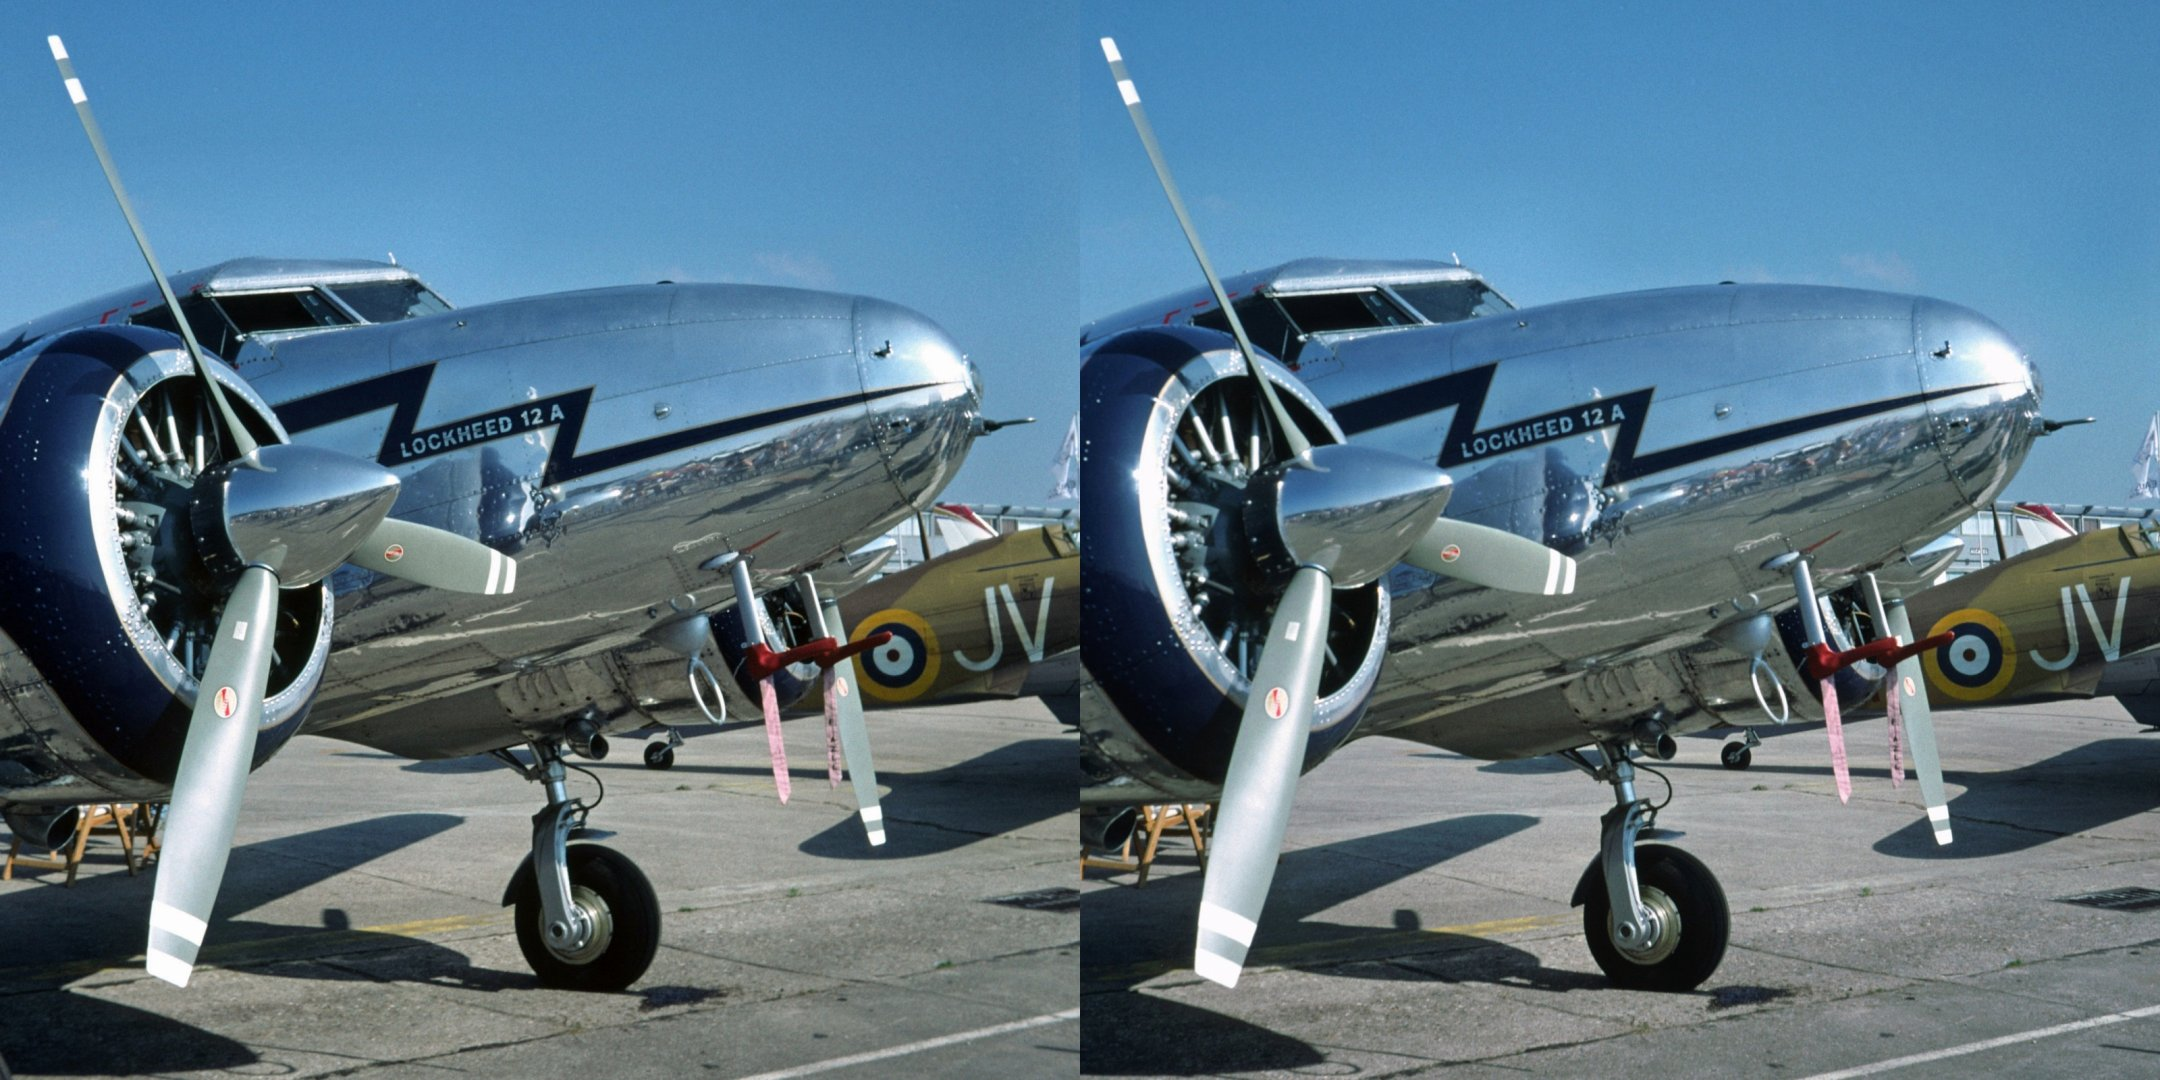 2011 Avion lockheed 12 a